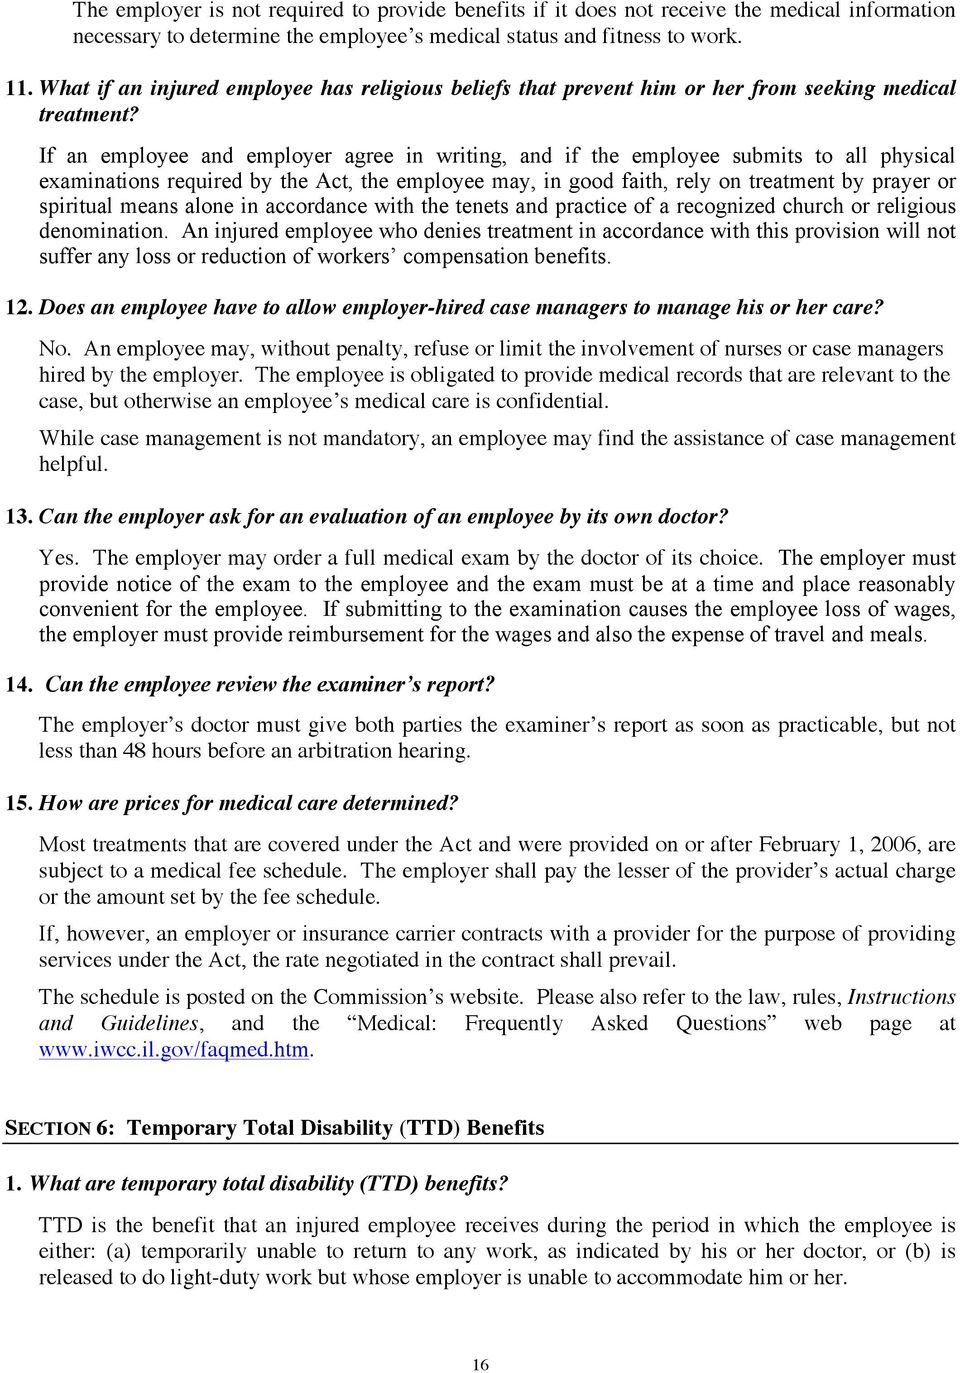 If an employee and employer agree in writing, and if the employee submits to all physical examinations required by the Act, the employee may, in good faith, rely on treatment by prayer or spiritual